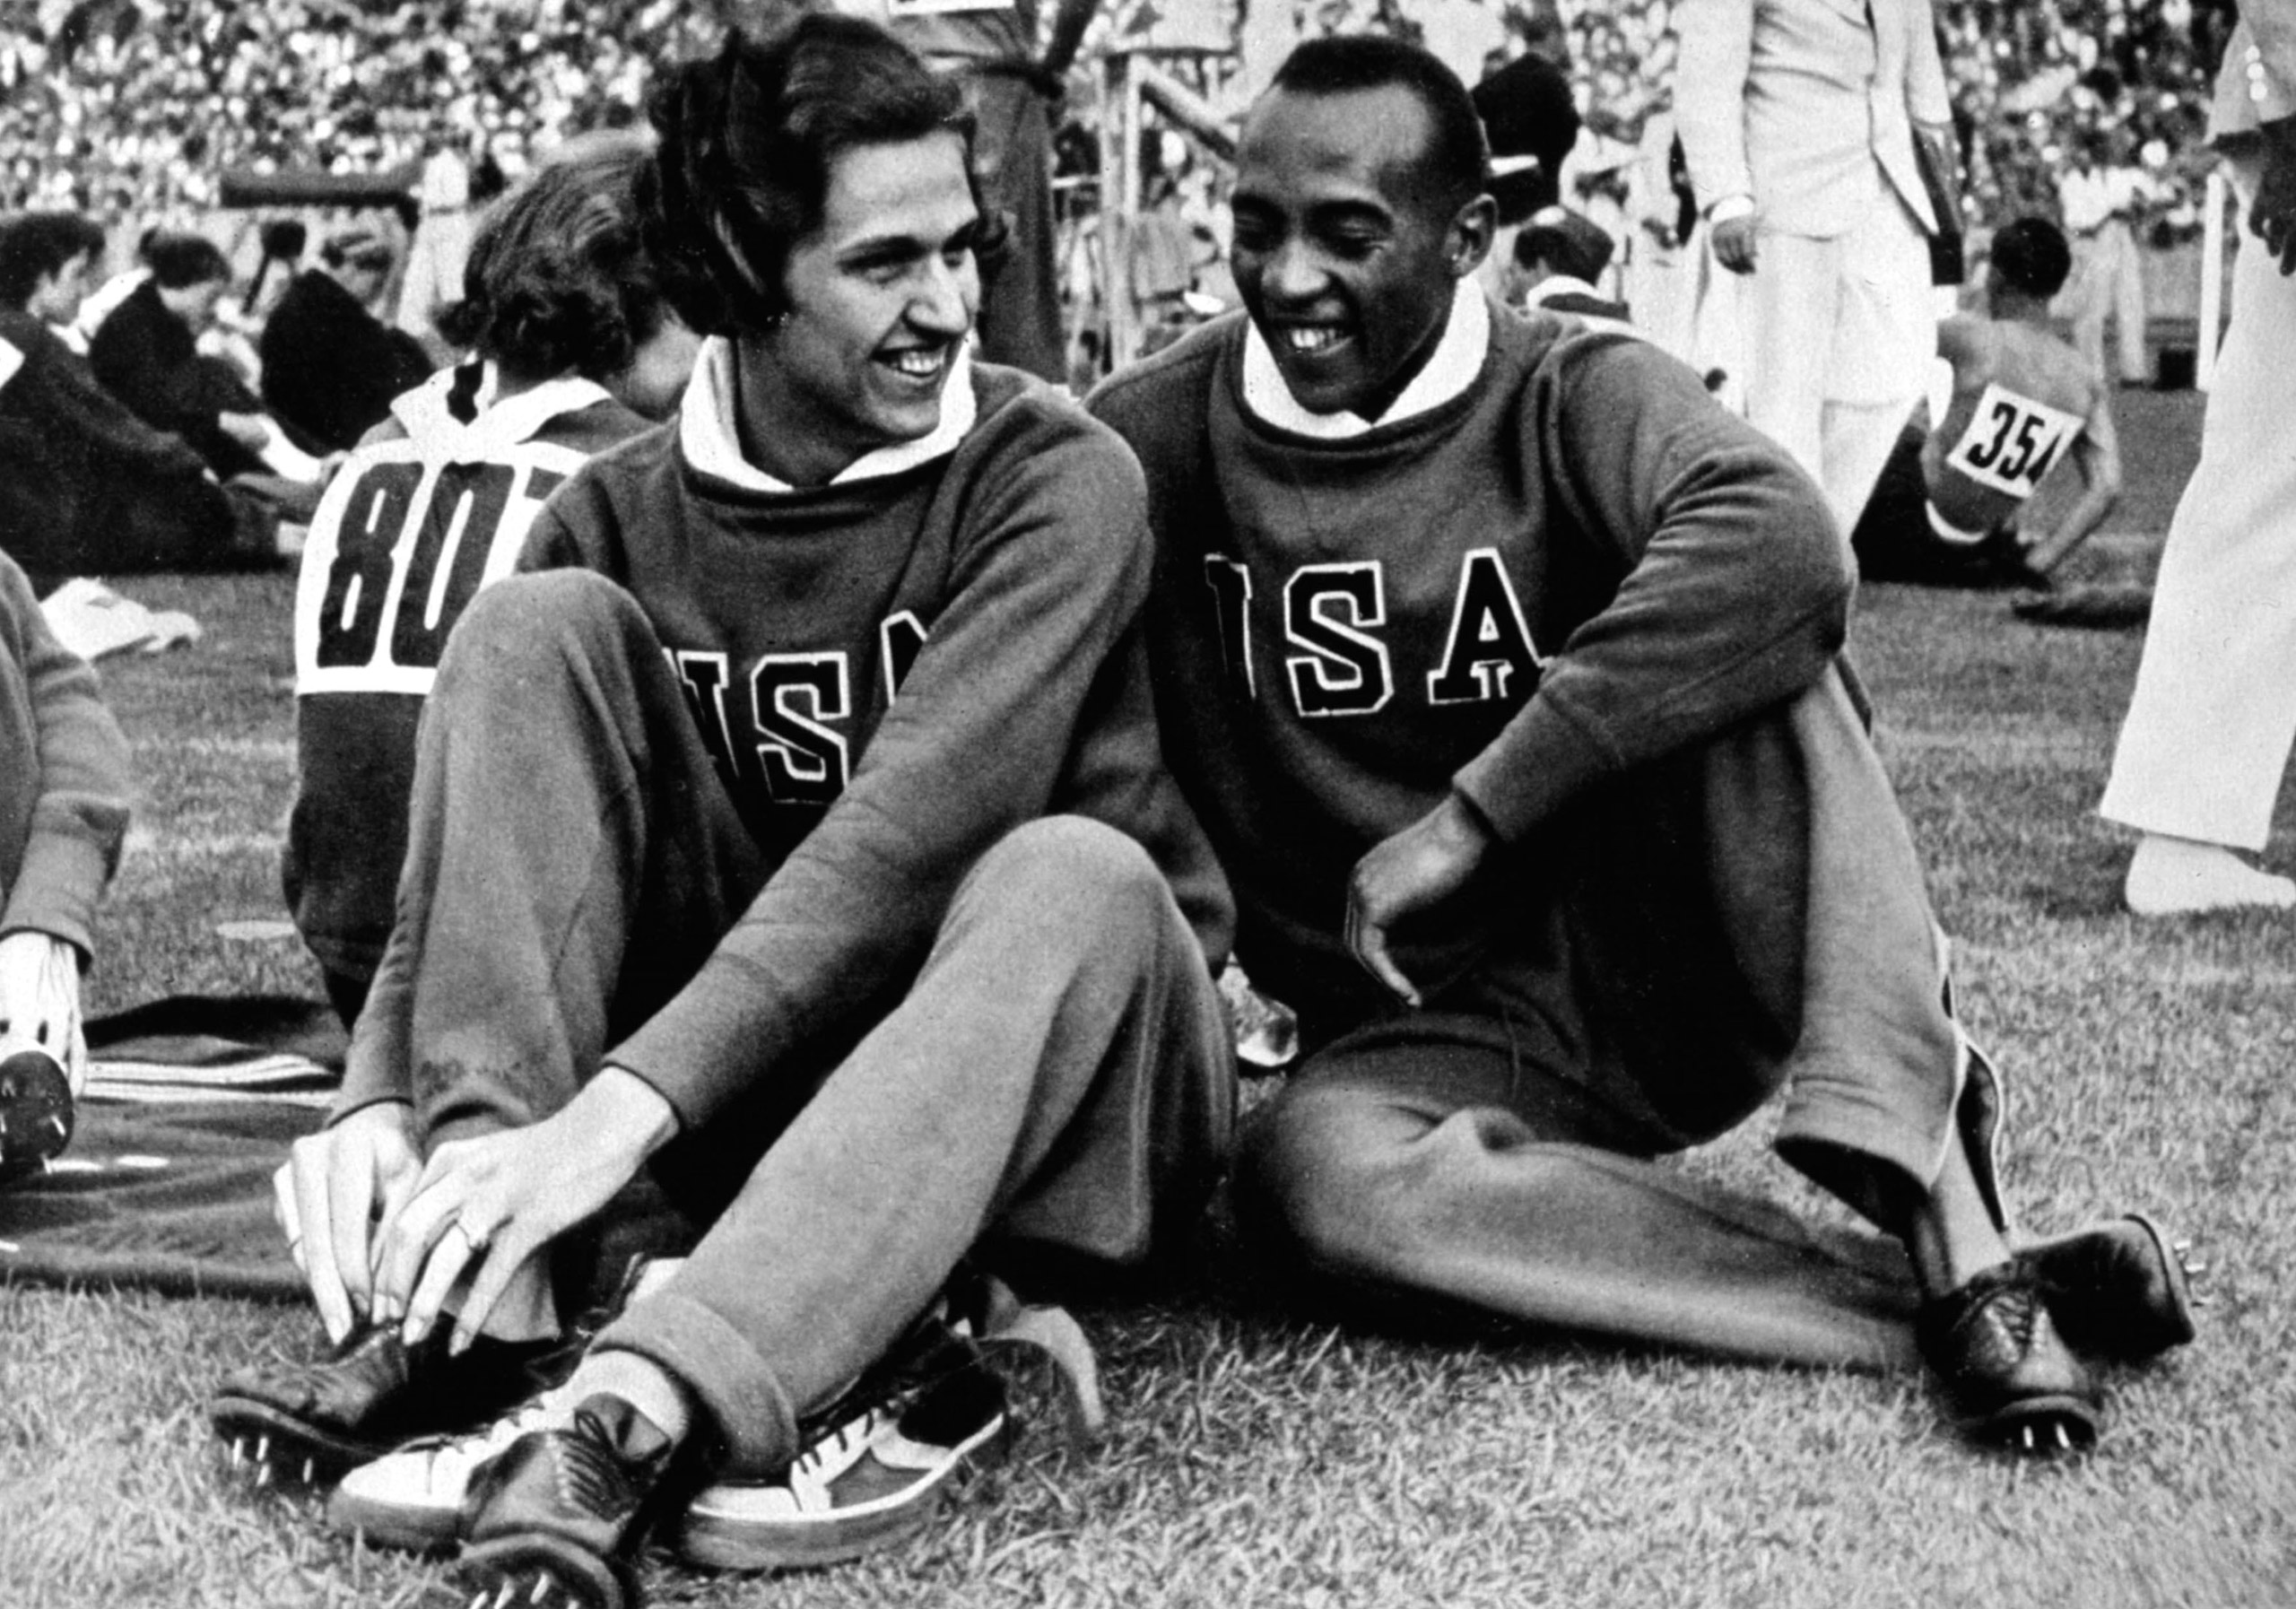 Jesse Owens and Helen Stephens at the Berlin Olympic Games in 1936